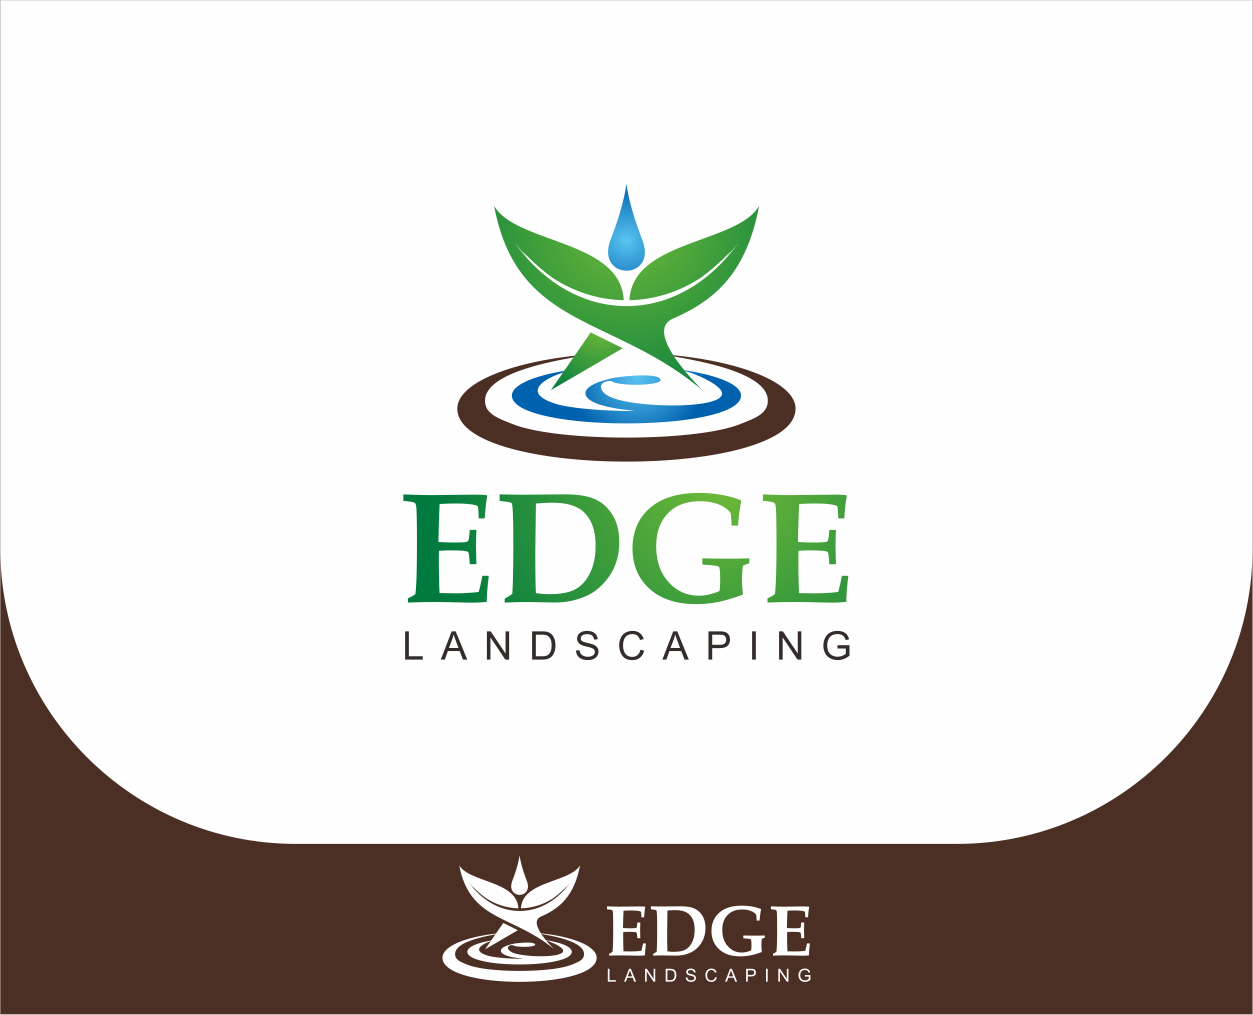 Logo Design by Armada Jamaluddin - Entry No. 232 in the Logo Design Contest Inspiring Logo Design for Edge Landscaping.